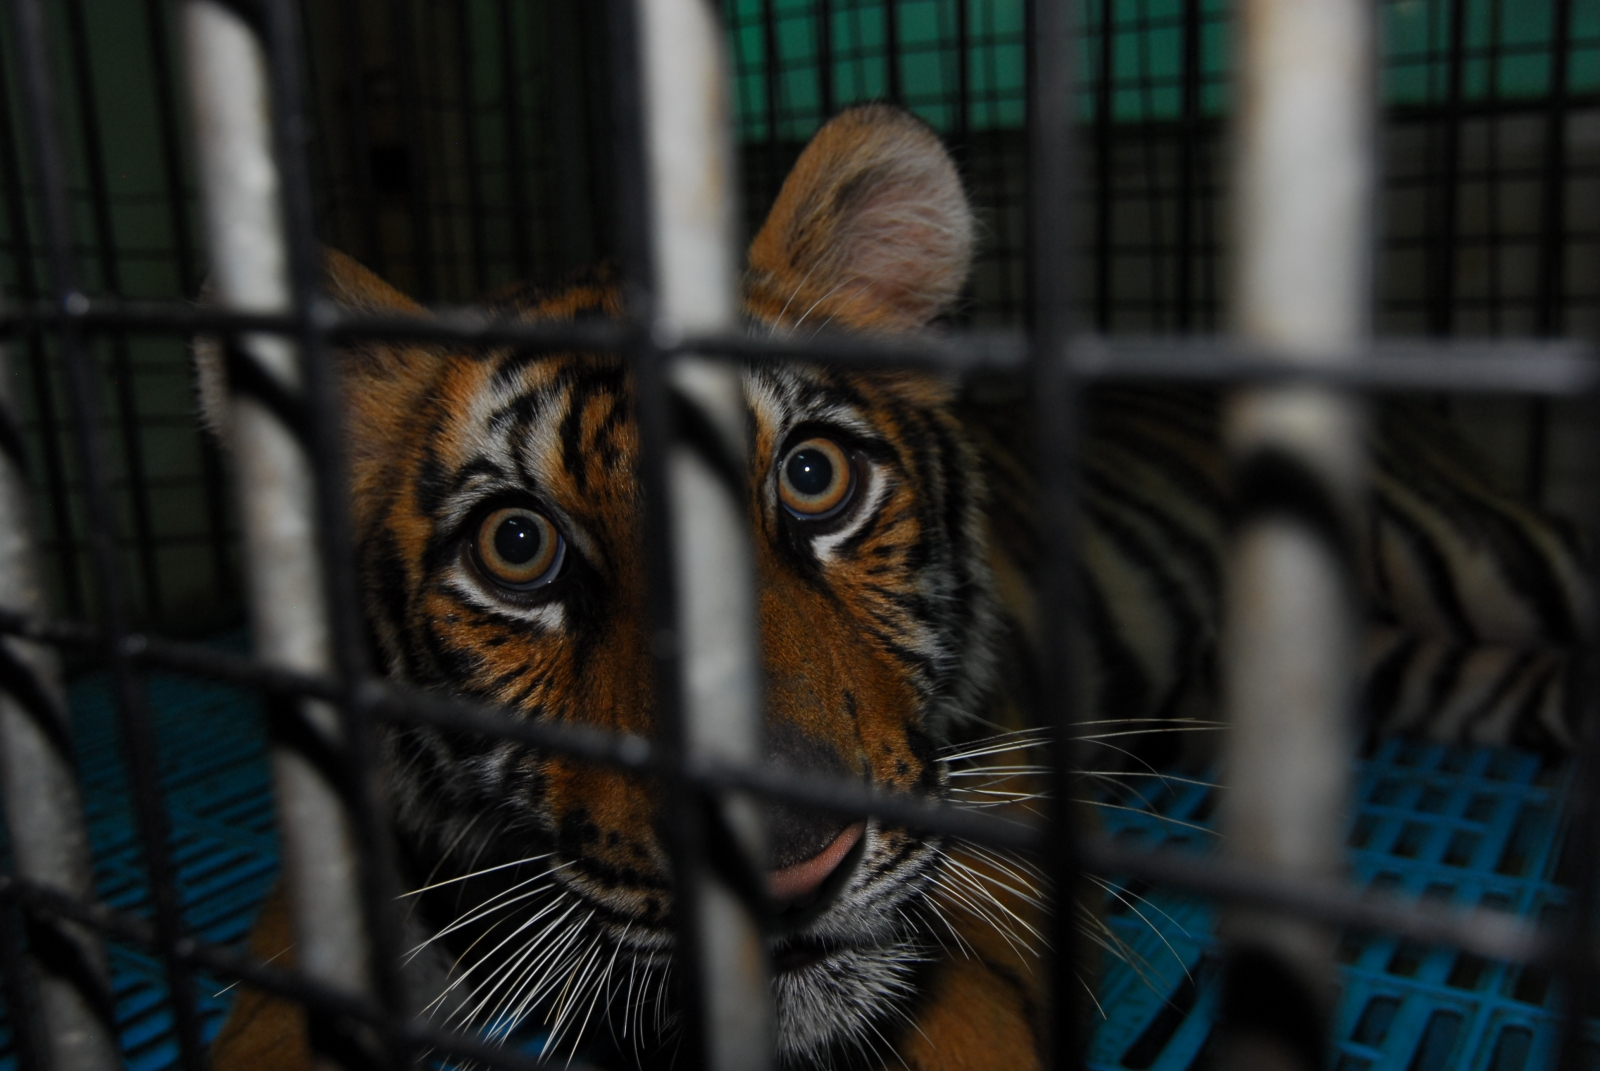 A caged tiger in Thailand